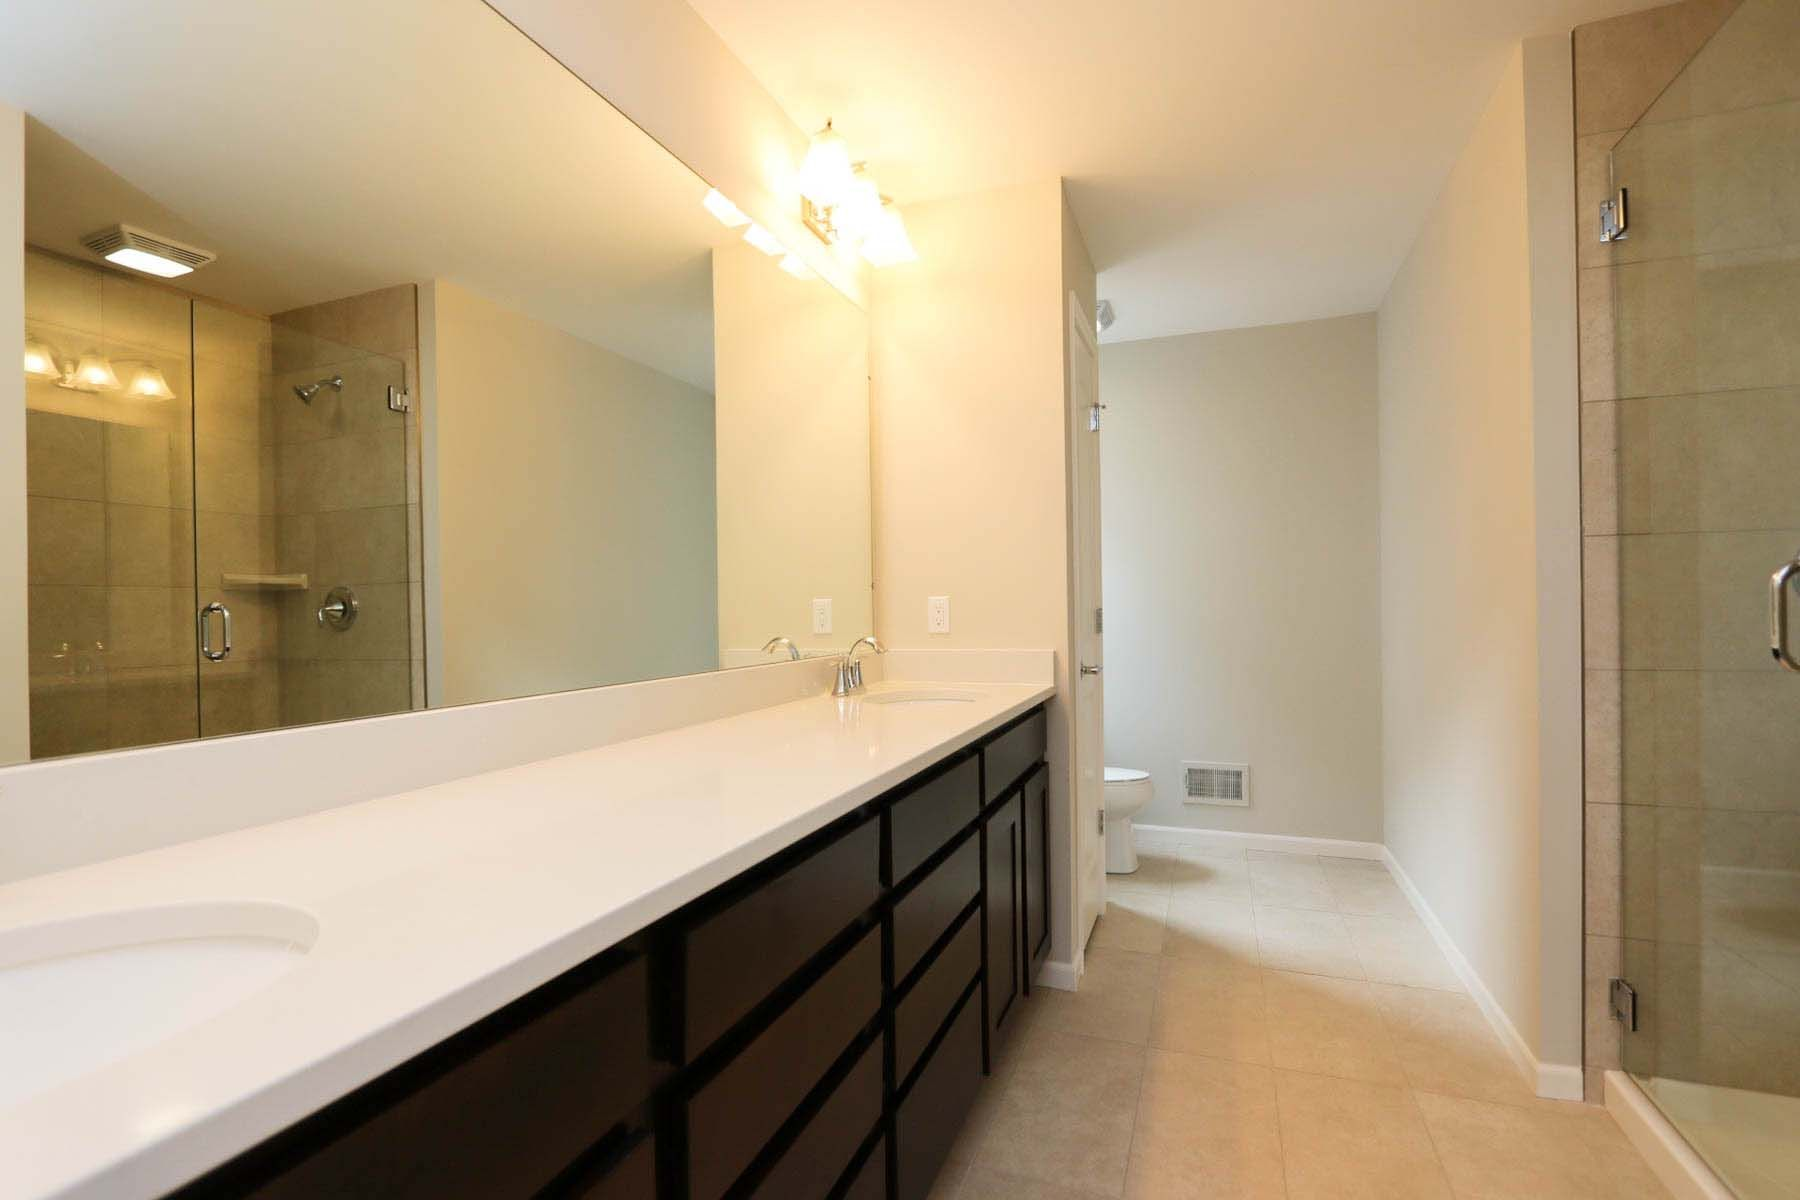 Bathroom featured in the Maplewood By M/I Homes in Detroit, MI